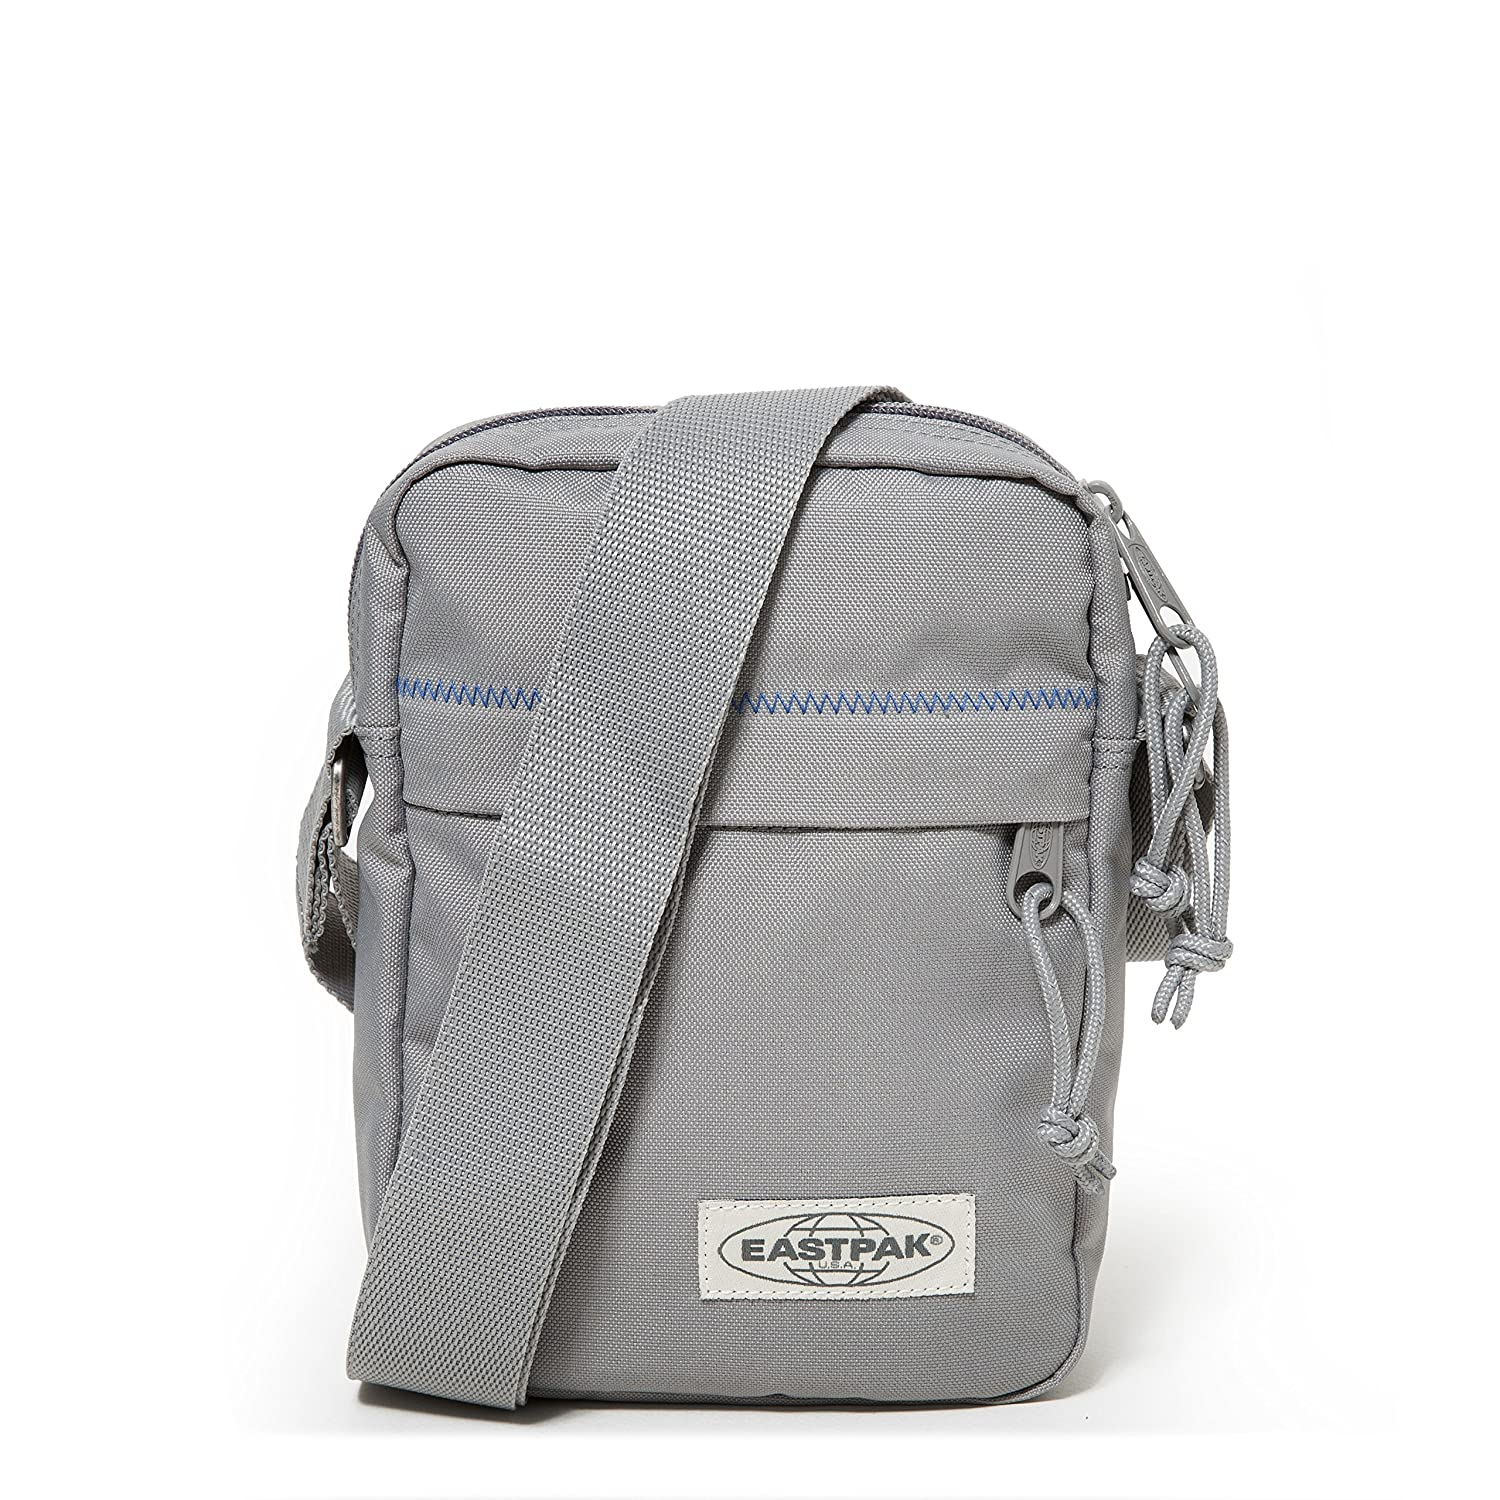 bb6f9db0d5a97 One À The Sac Eastpak RubberBagages Épaule Grey wOXn8Pk0